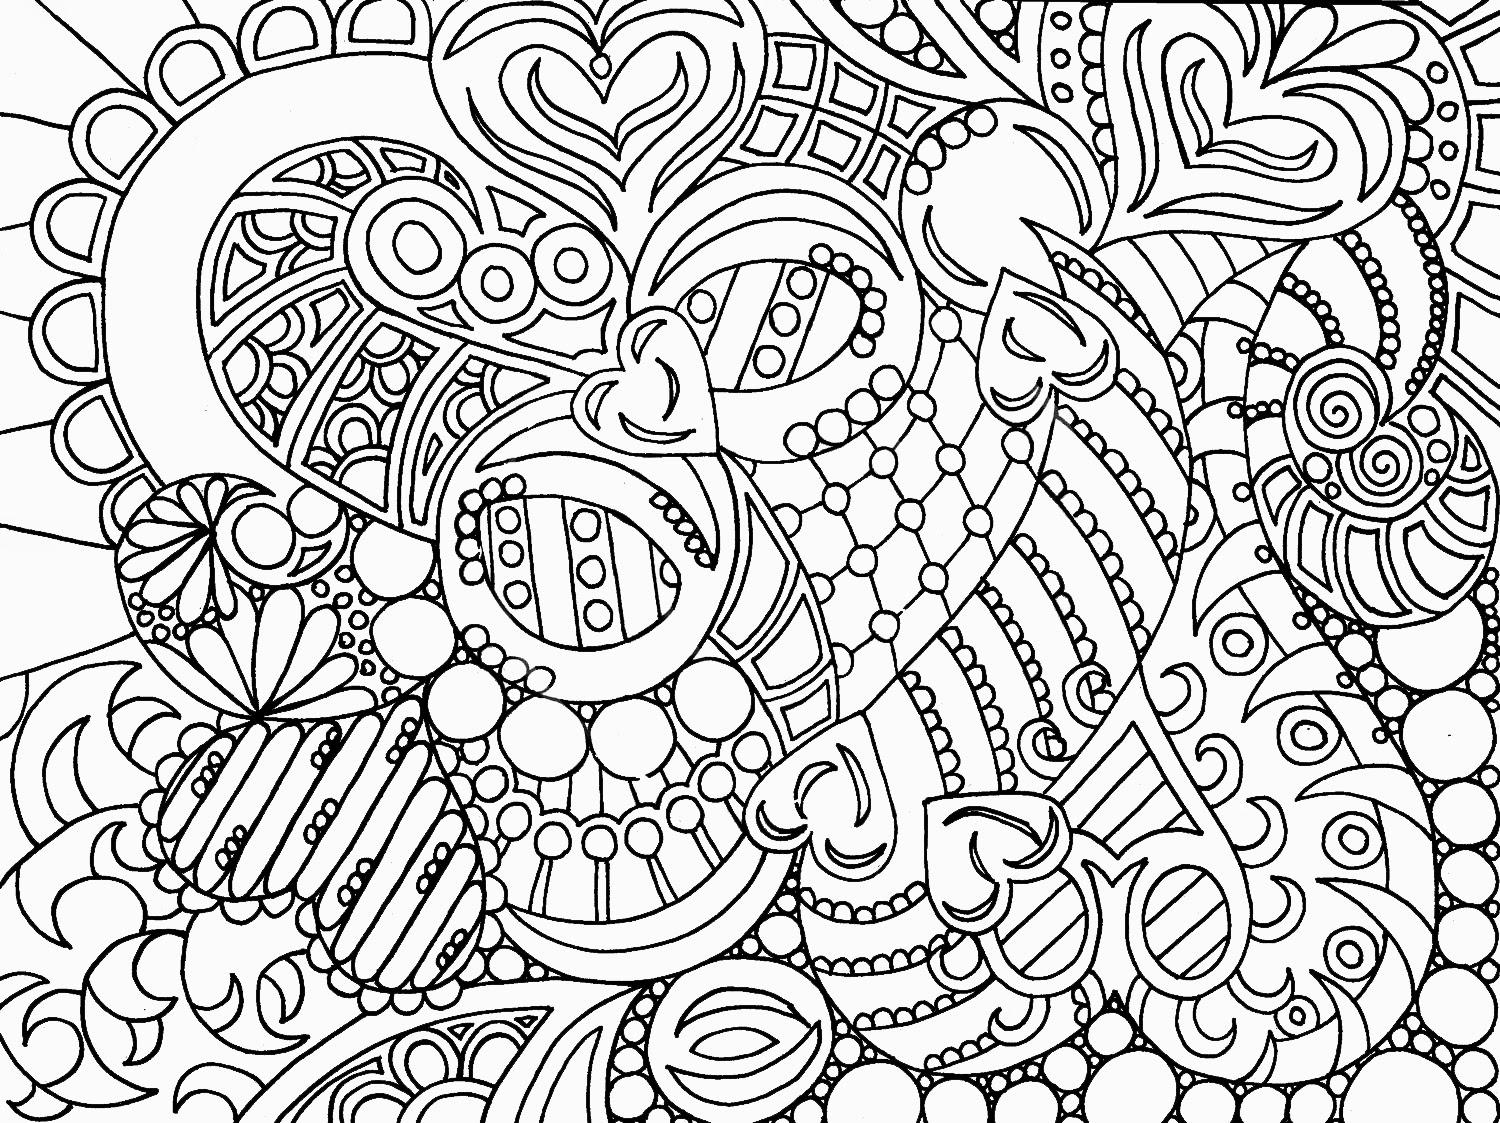 coloring pages for adults hd best hd fancy owl coloring pages hard free free coloring coloring pages adults for hd